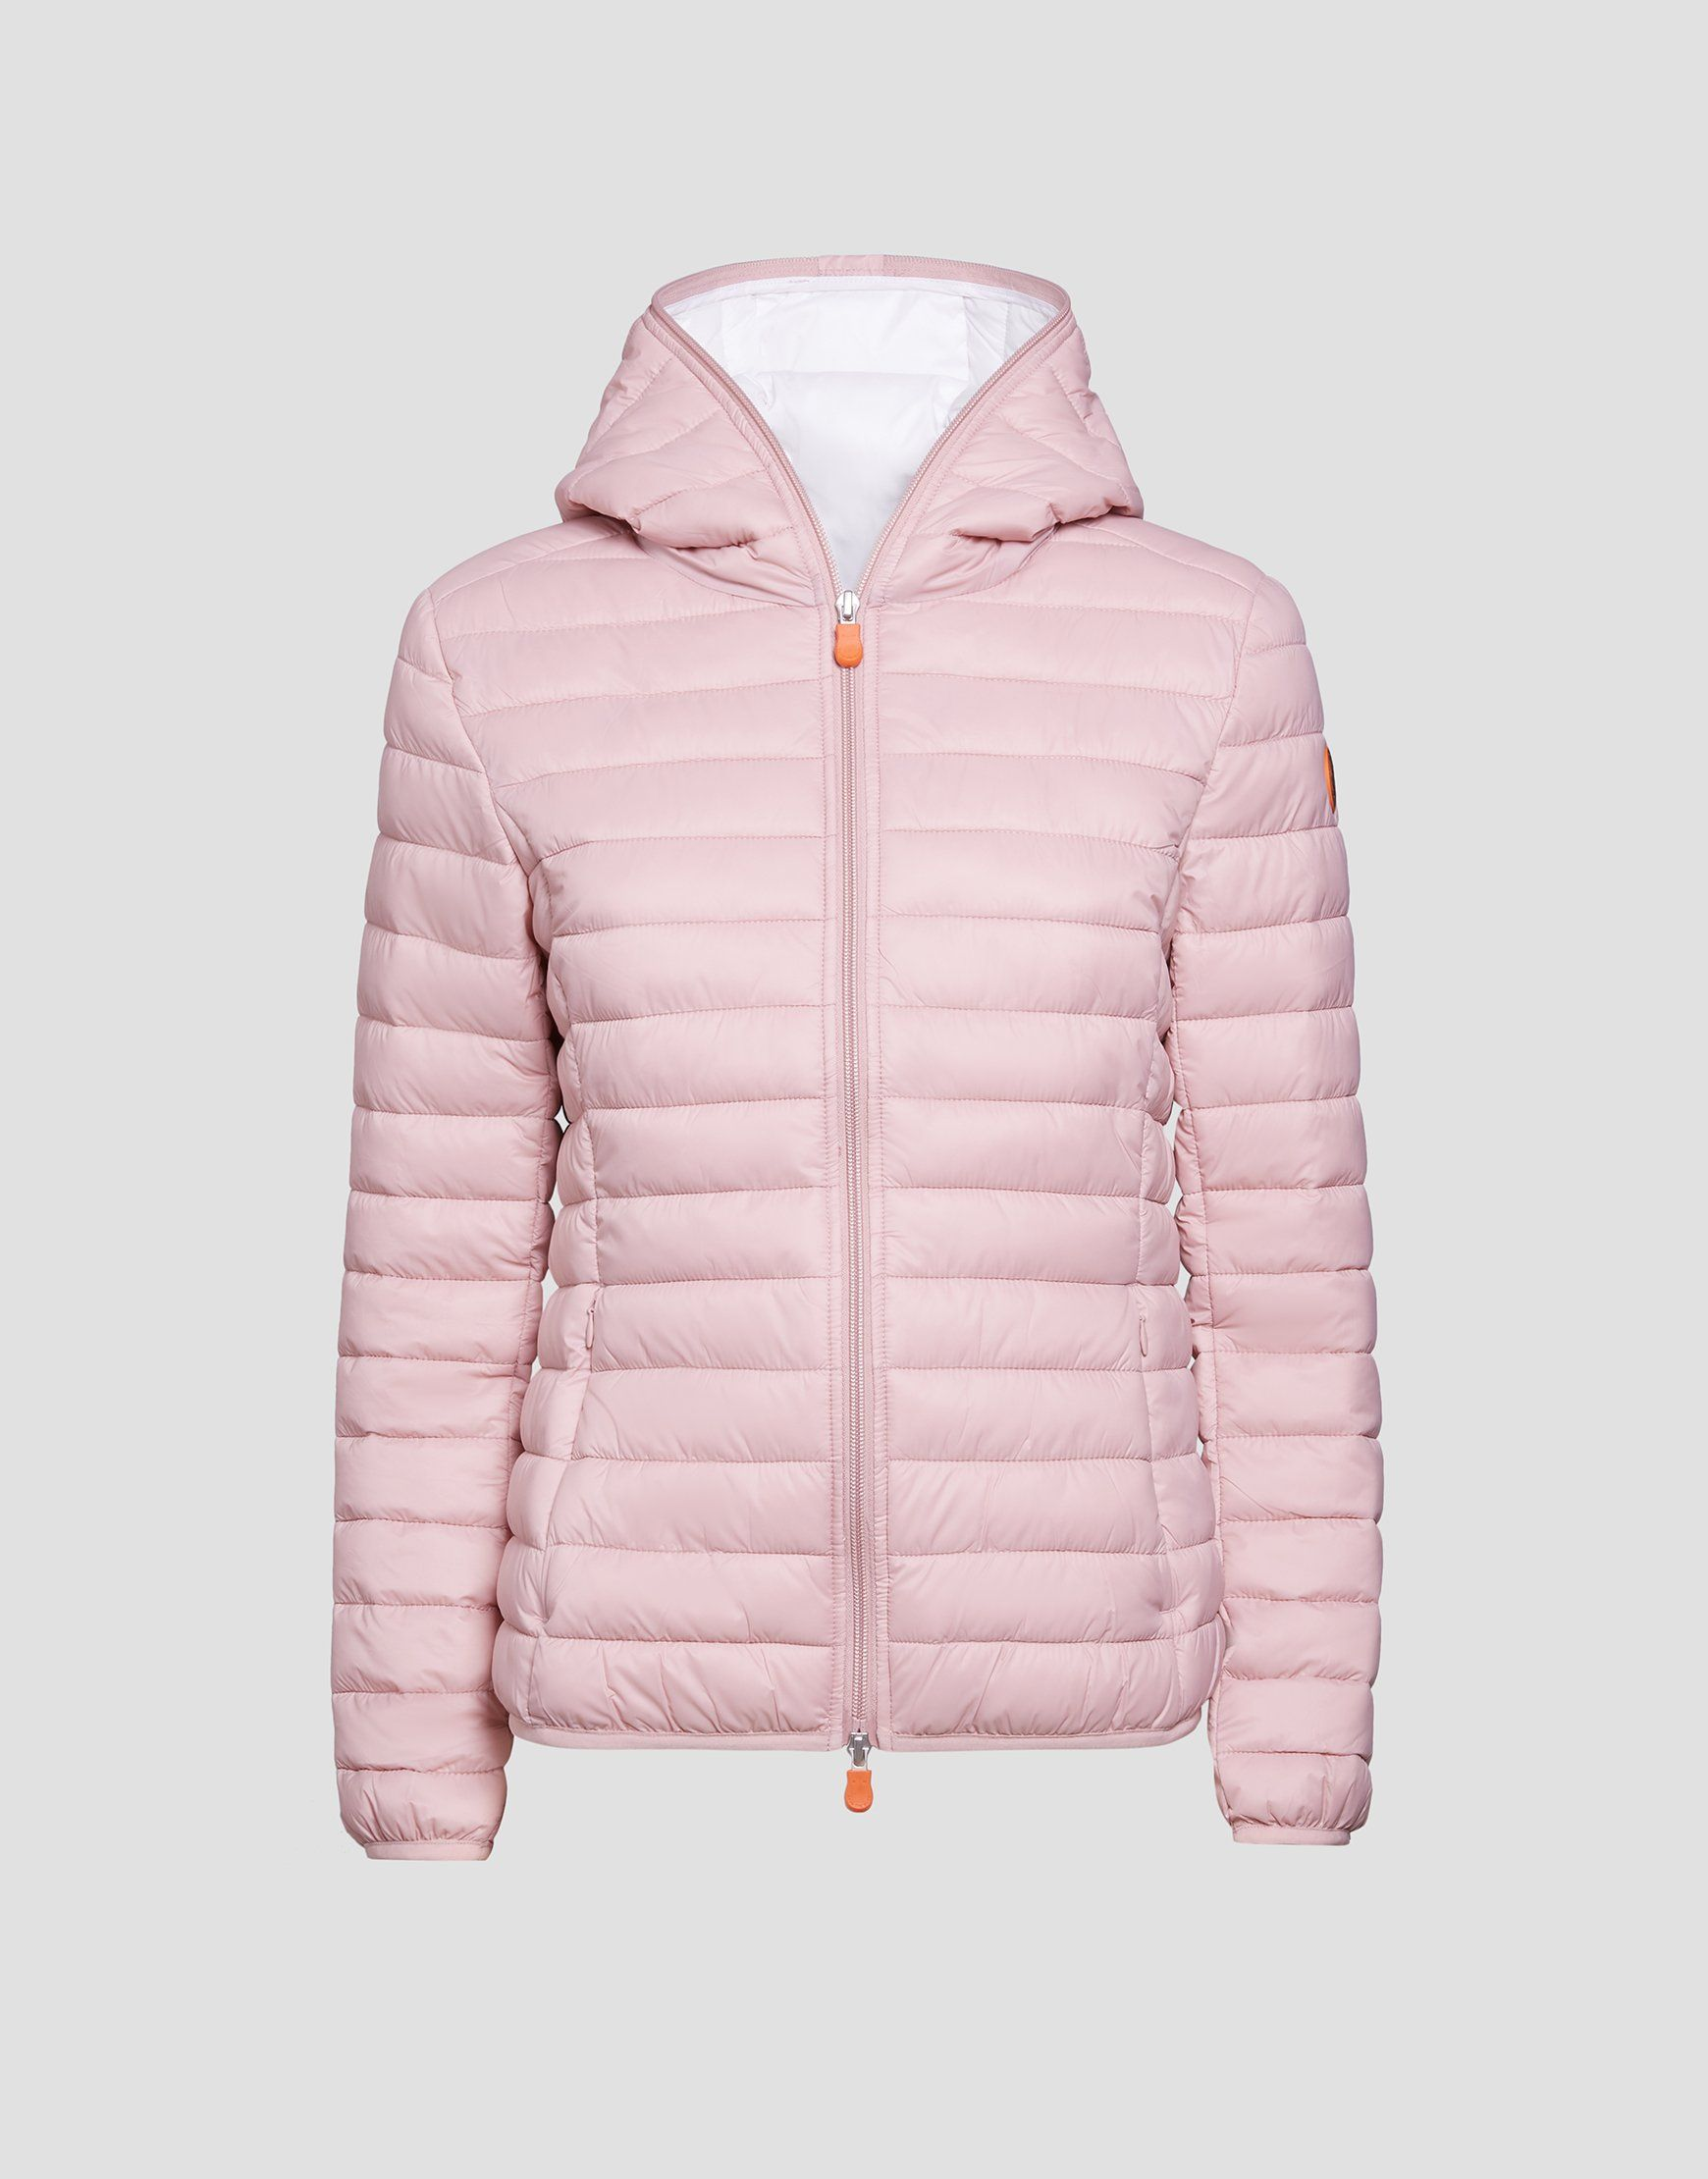 Womens Giga Hooded Puffer Jacket In Blush Pink Save The Duck Jackets Winter Jackets Women [ 2220 x 1740 Pixel ]